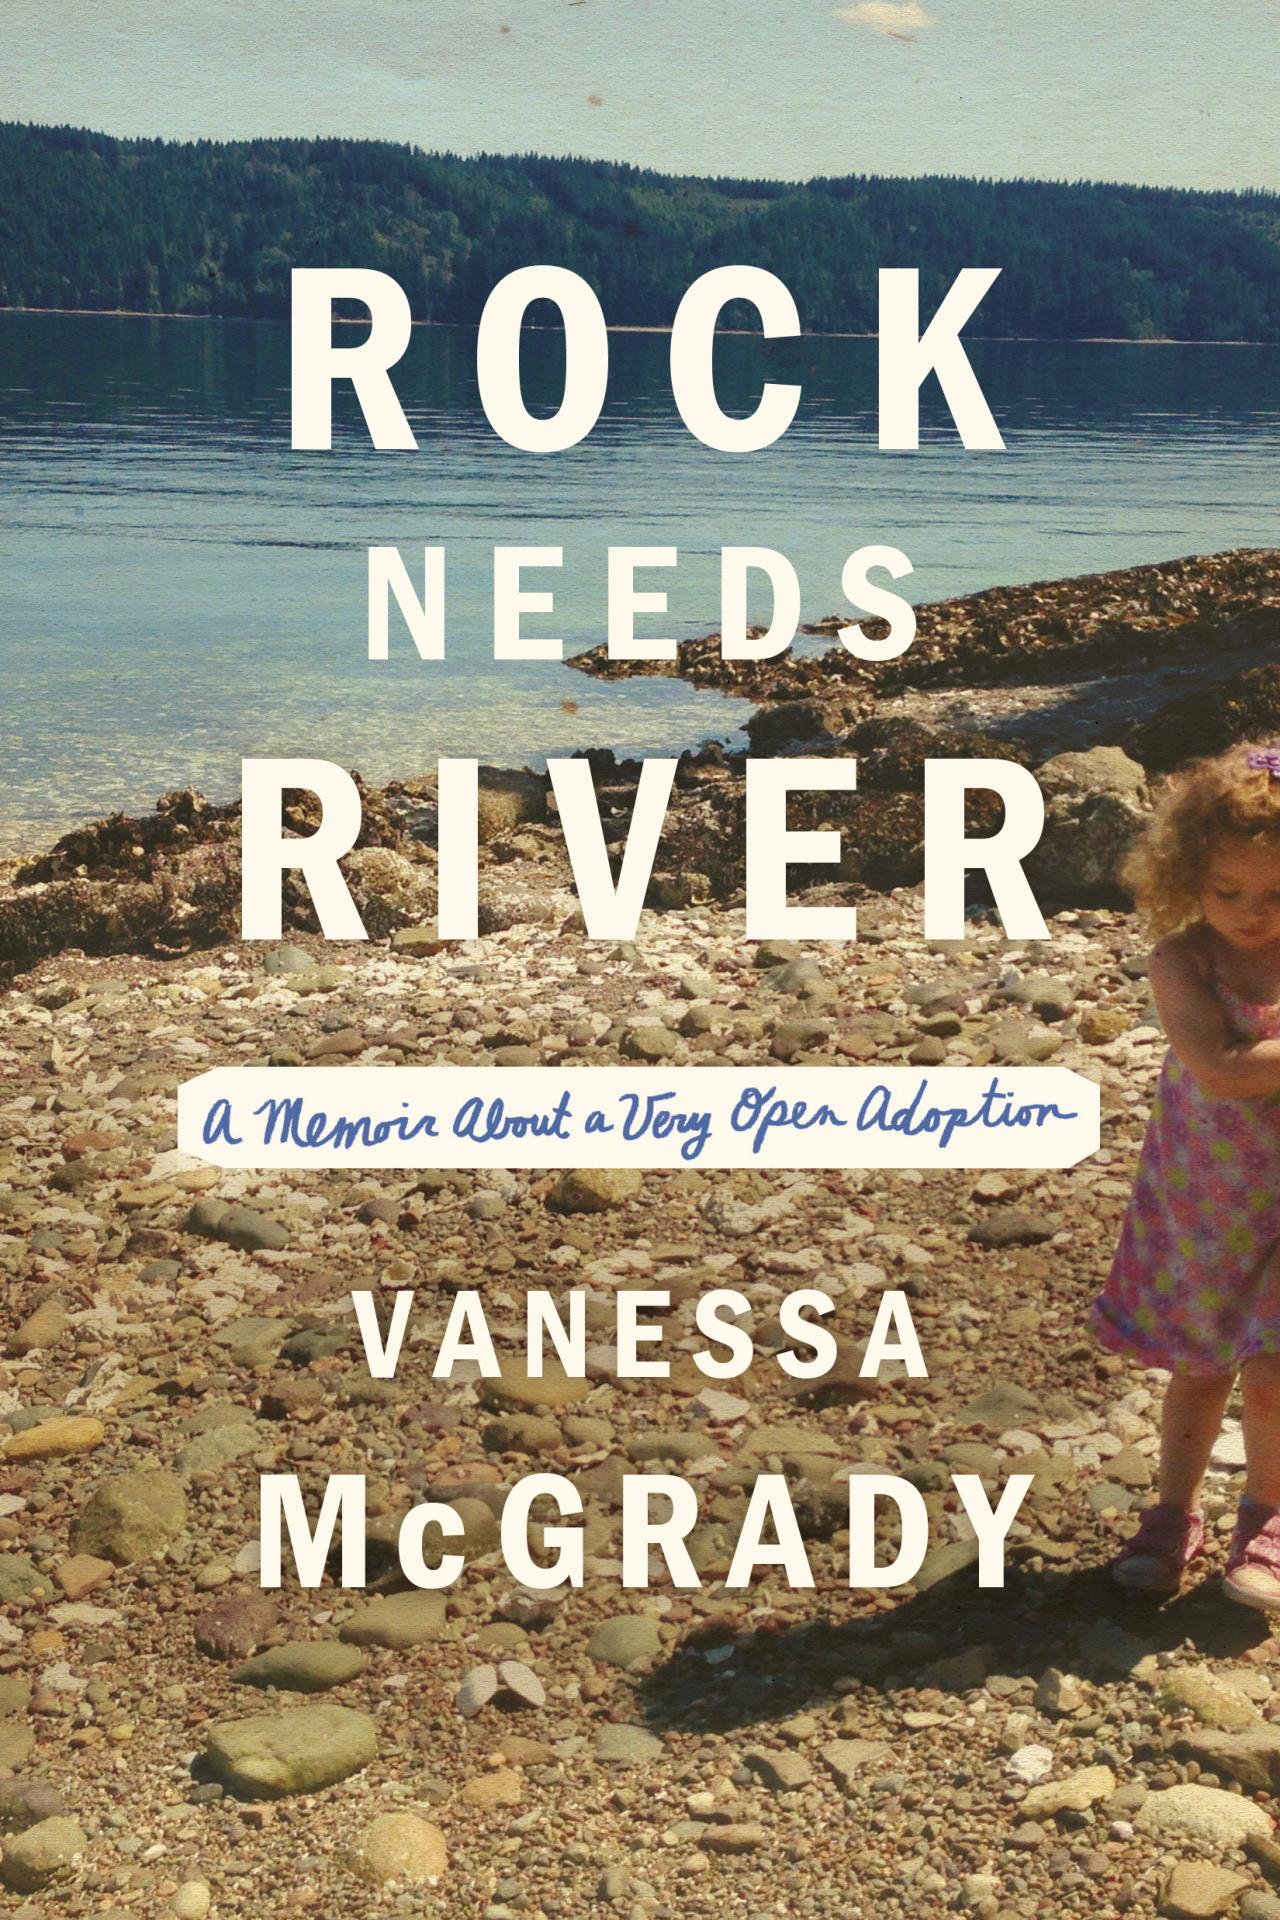 McGrady-24748-RockNeedsRiver-CV-FT_v2